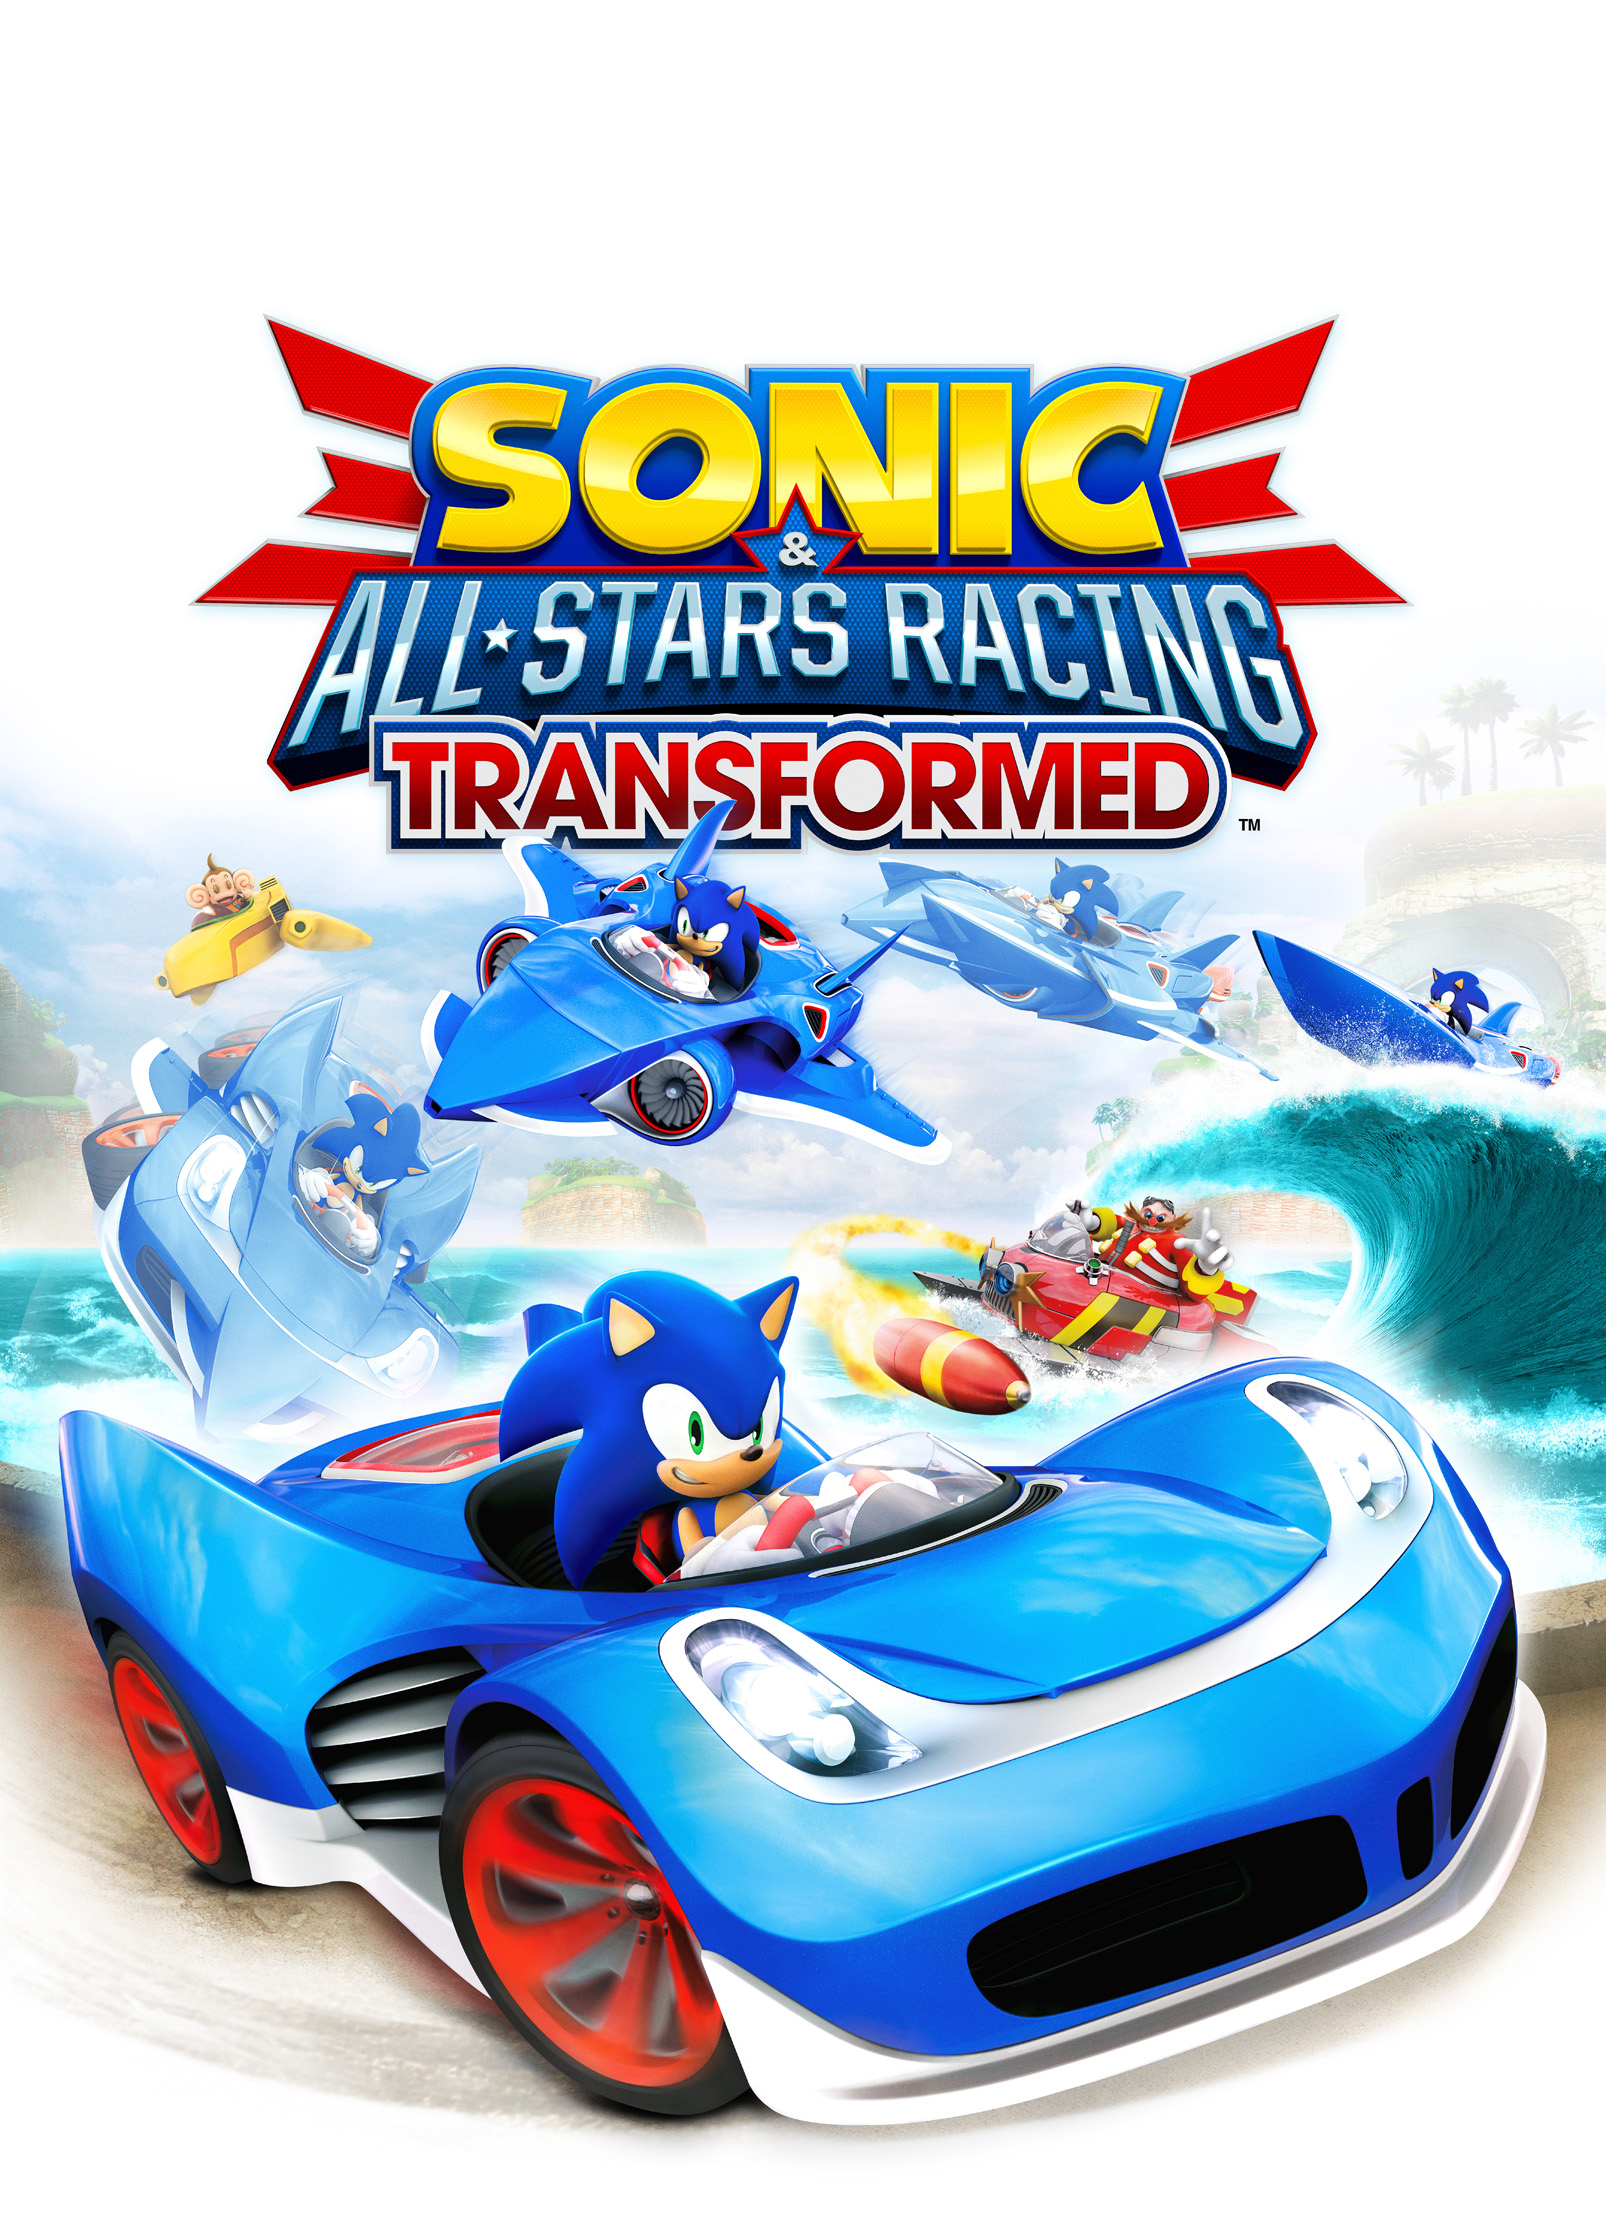 Screens Zimmer 6 angezeig: racing games for wii